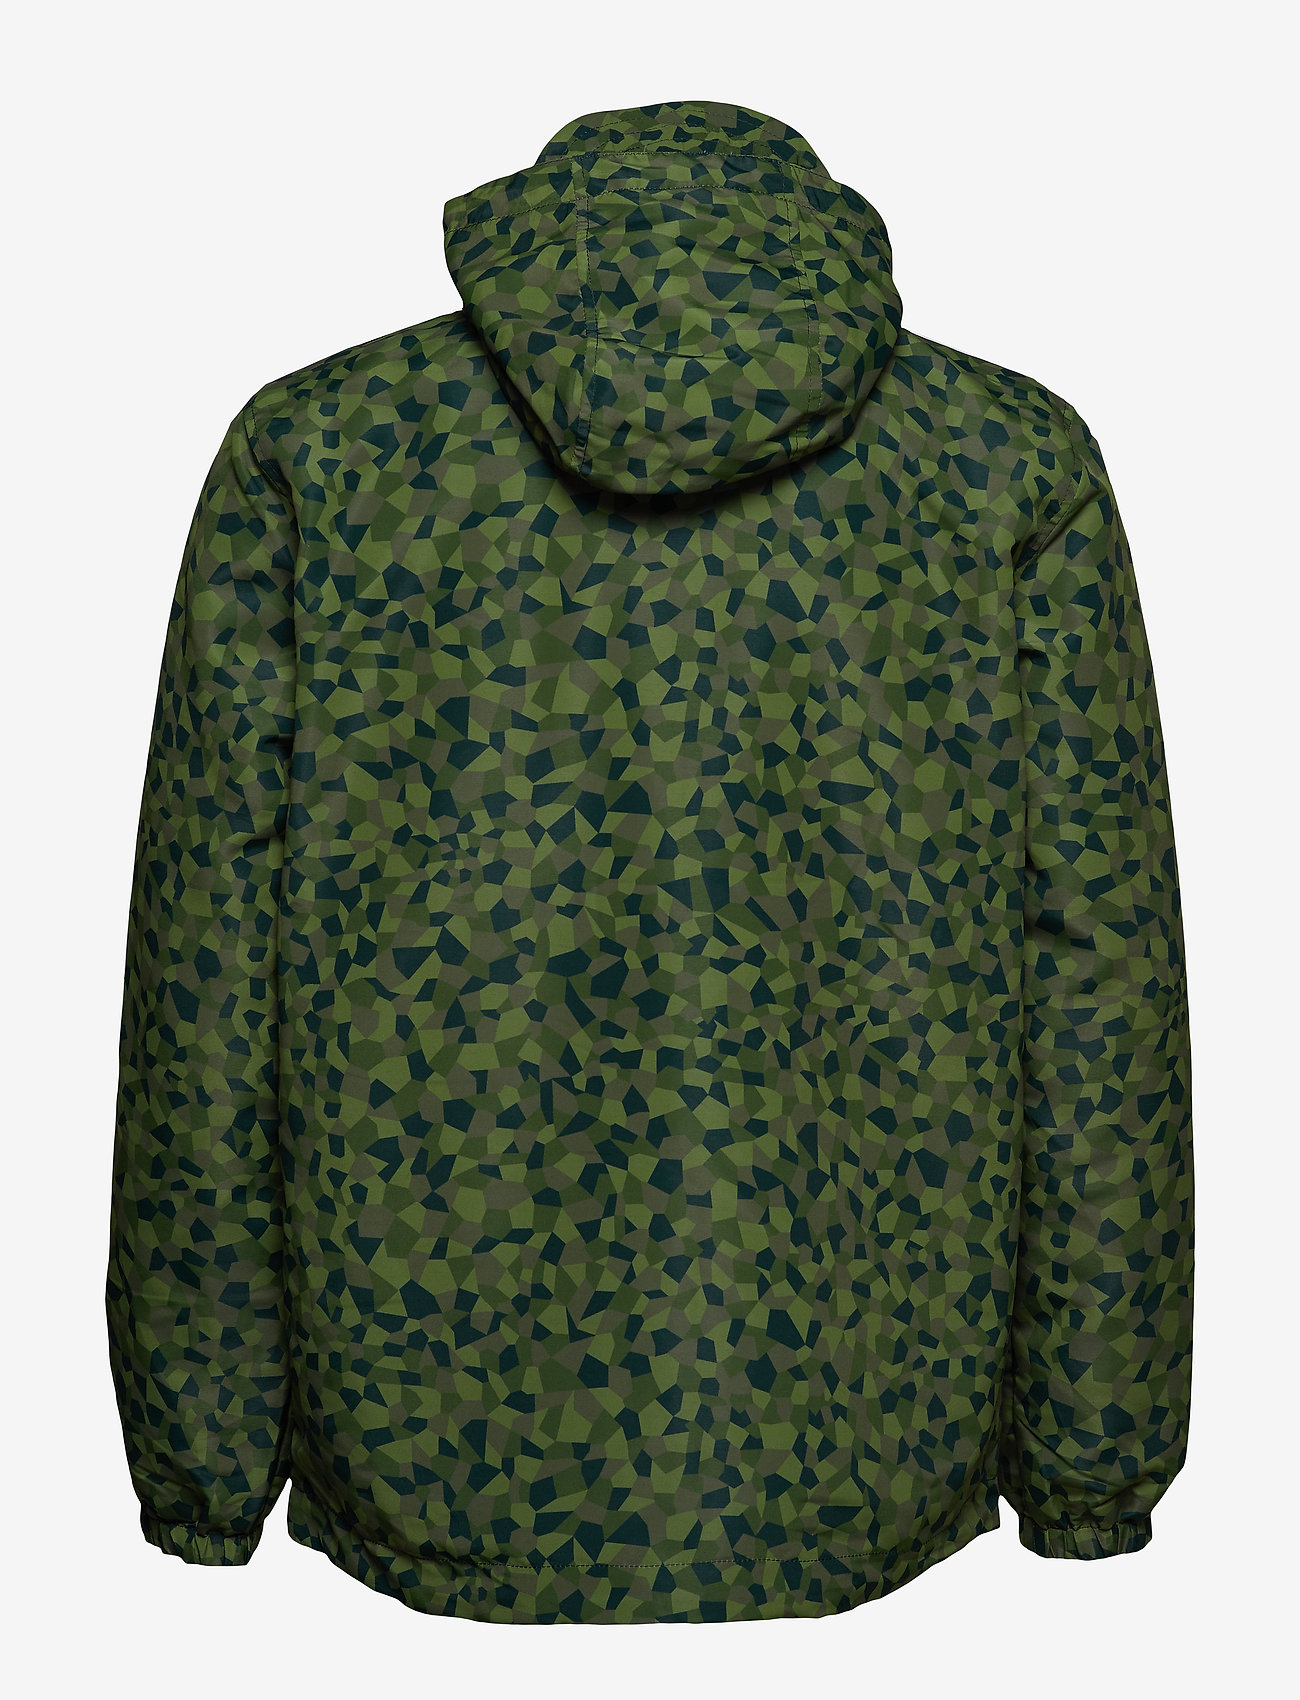 Lyle & Scott Geo Print Zip Through Hooded Jacket - Jakker og frakker GEO PRINT - Menn Klær